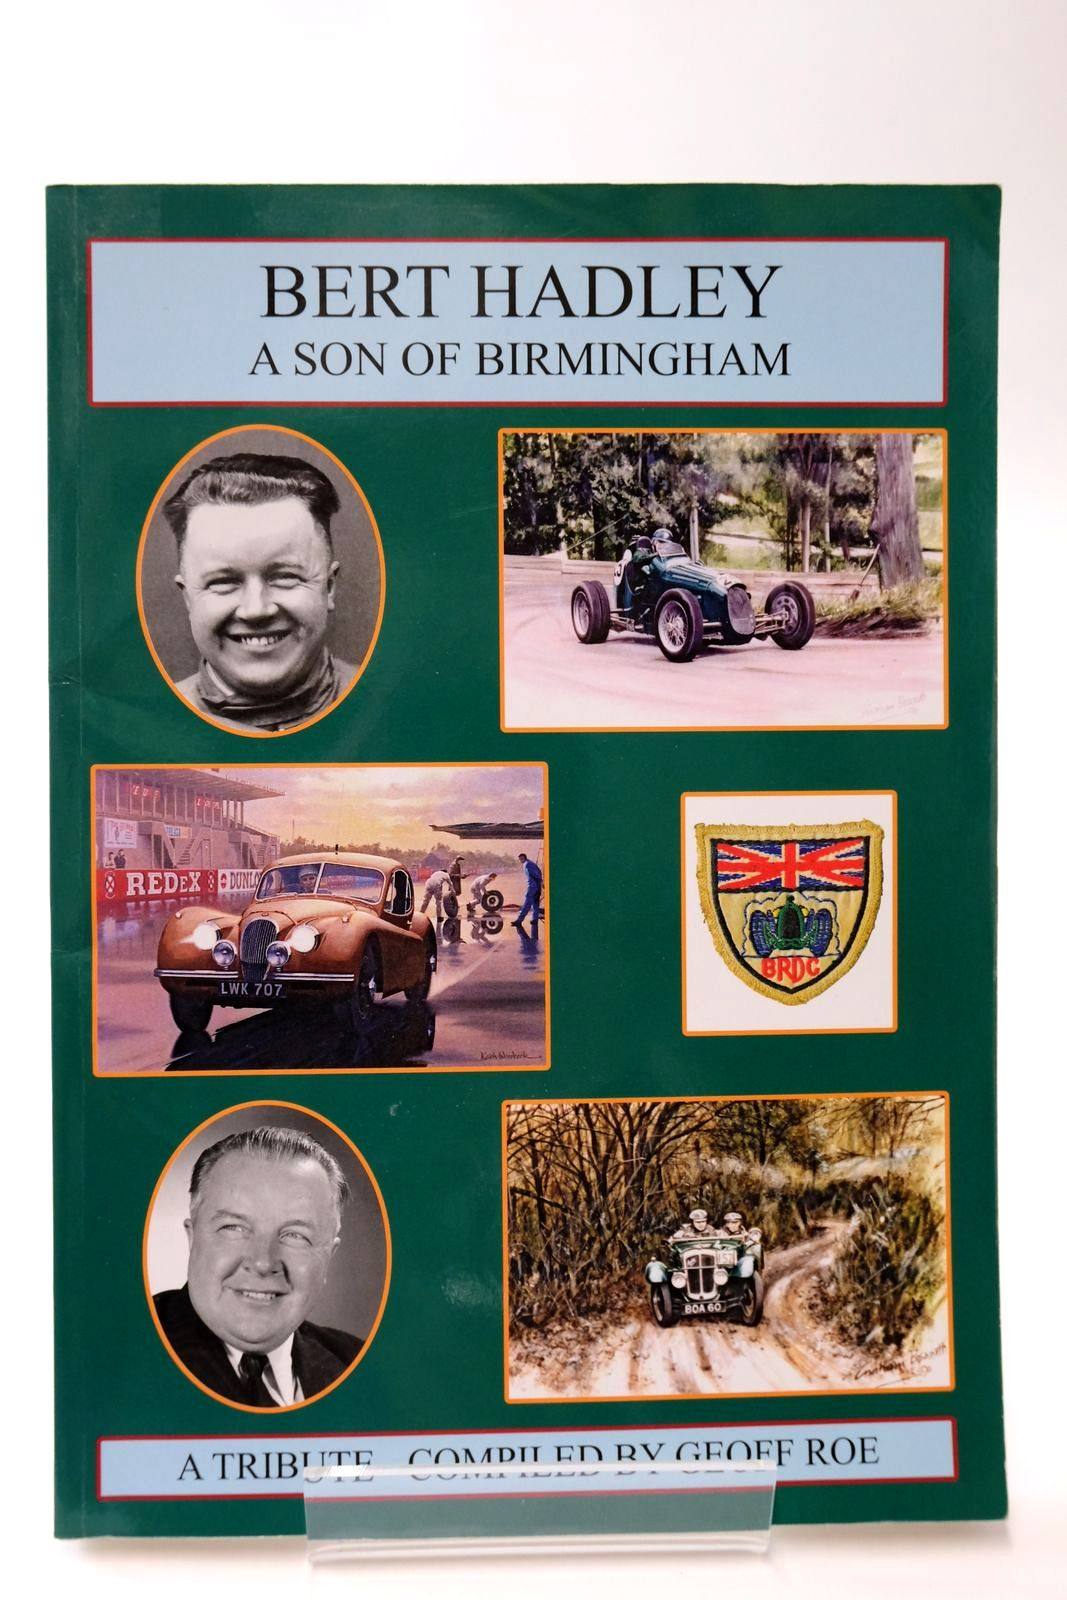 Photo of BERT HADLEY A SON OF BIRMINGHAM: A TRIBUTE written by Roe, Geoff published by The Pre-War Austin Seven Club Ltd. (STOCK CODE: 2133460)  for sale by Stella & Rose's Books